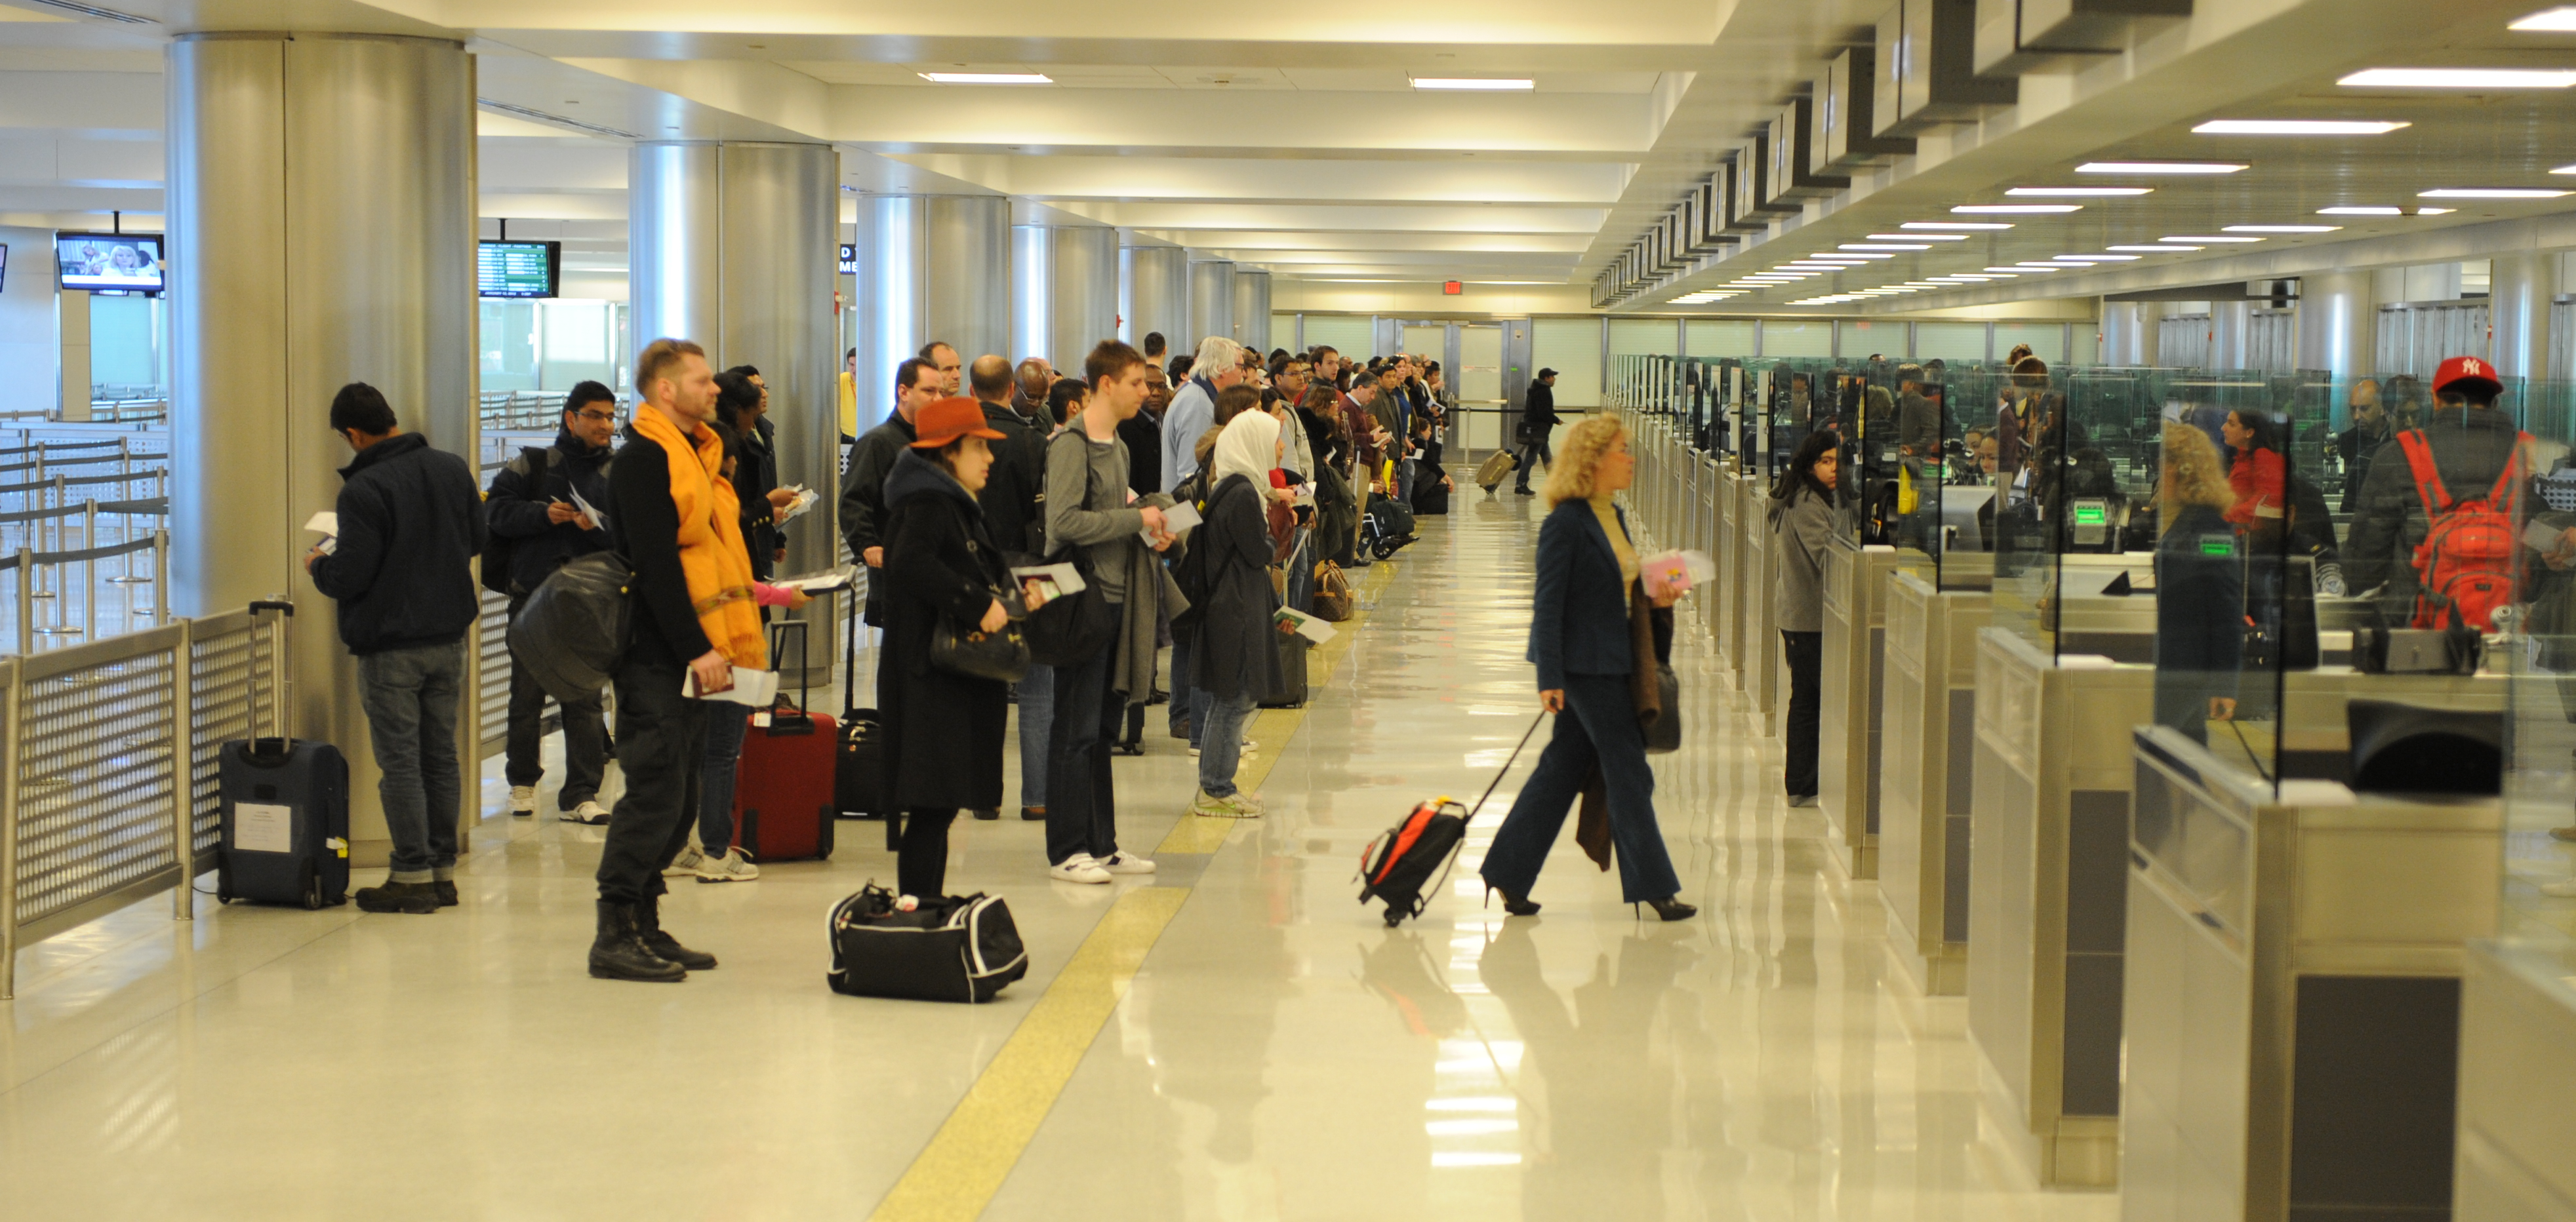 Passengers prepare to pass through international customs at Dulles International Airport on January 13, 2012, in Dulles, VA.